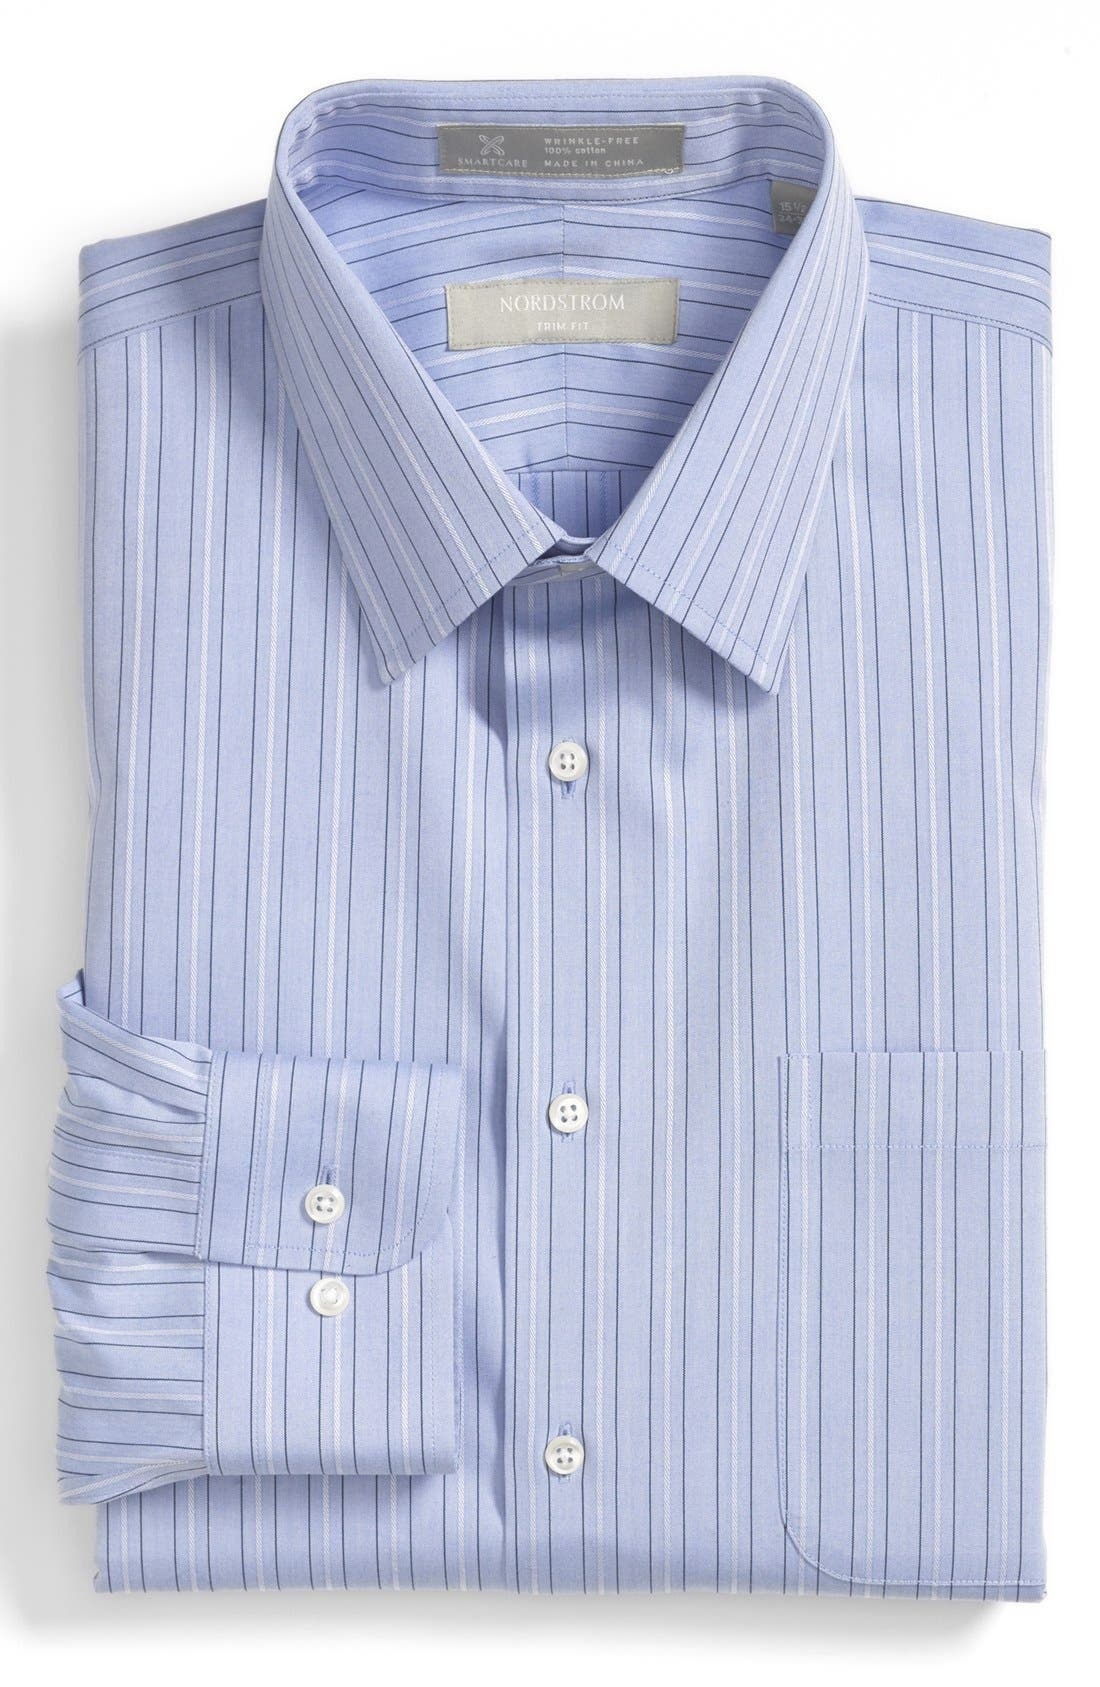 Main Image - Nordstrom Smartcare™ Trim Fit Stripe Non-Iron Dress Shirt